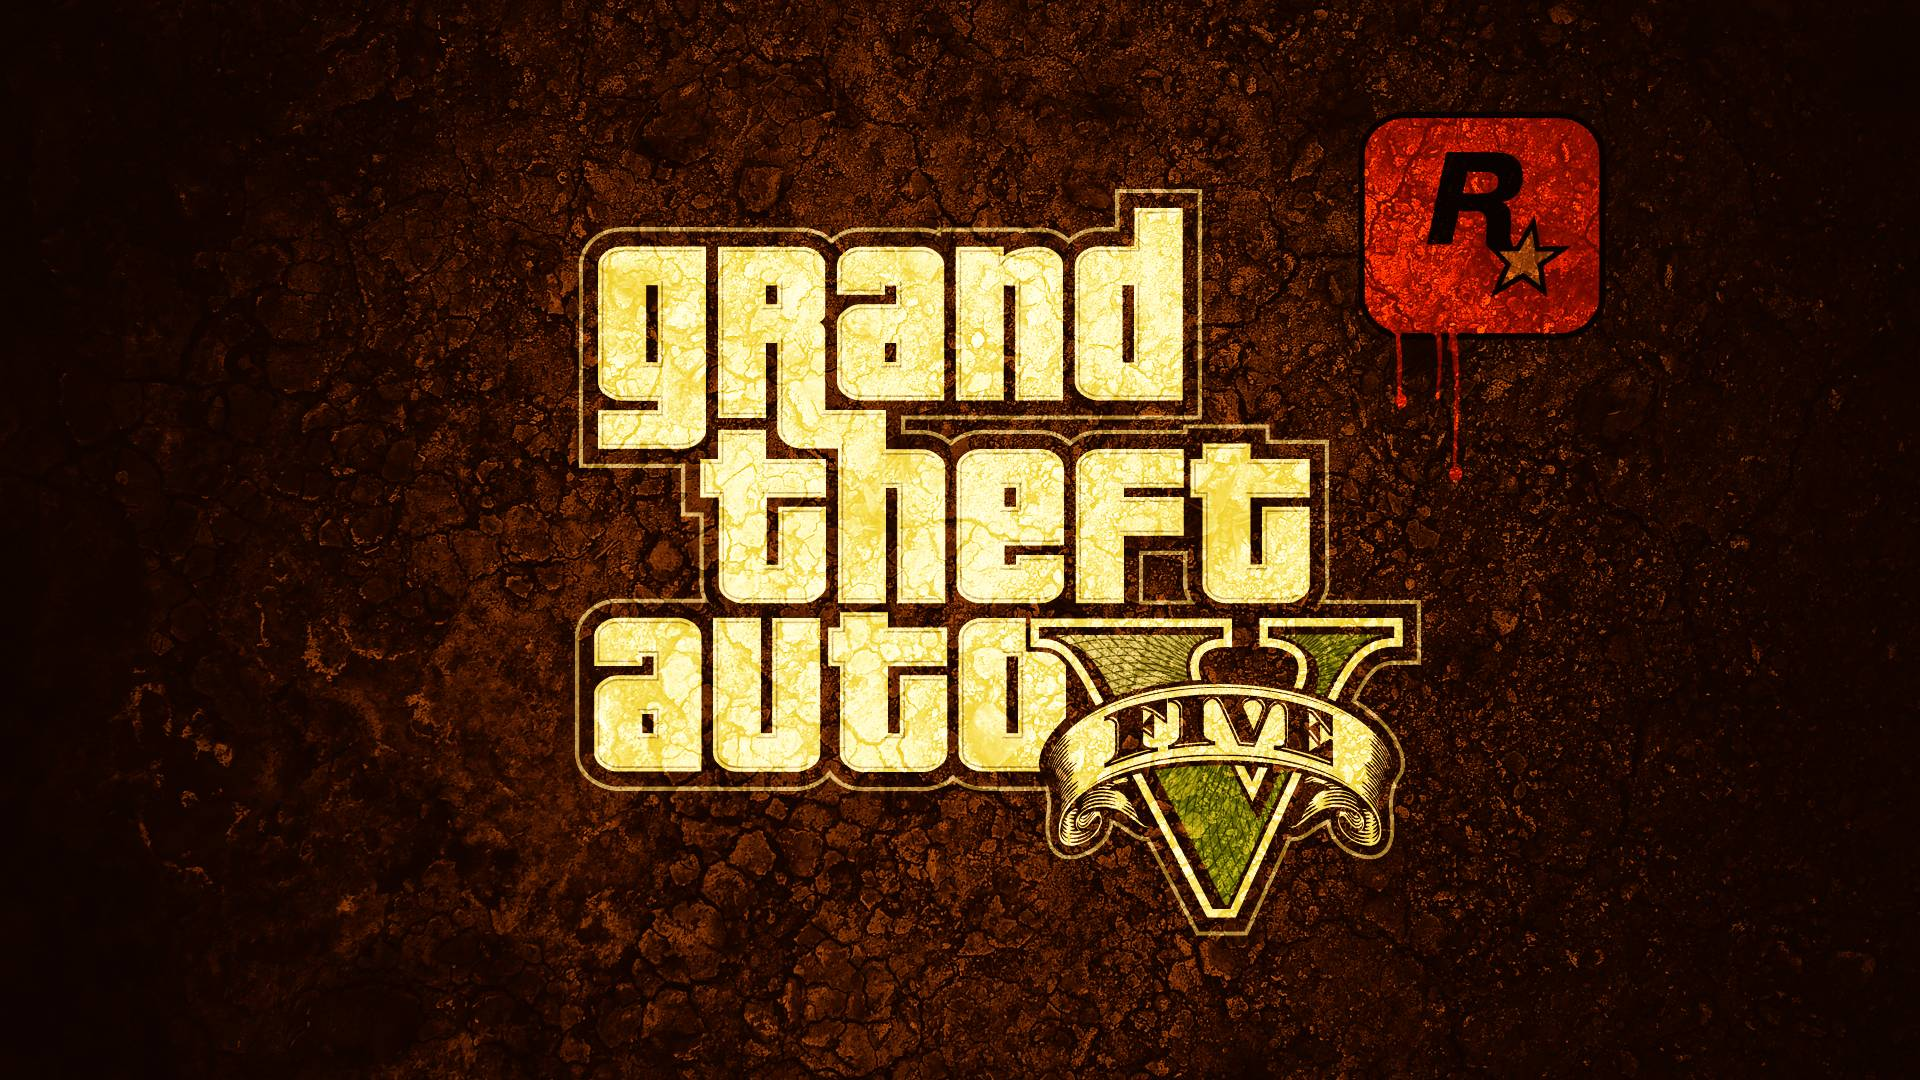 GTA 5 Wallpapers In HD « GamingBolt.com: Video Game News